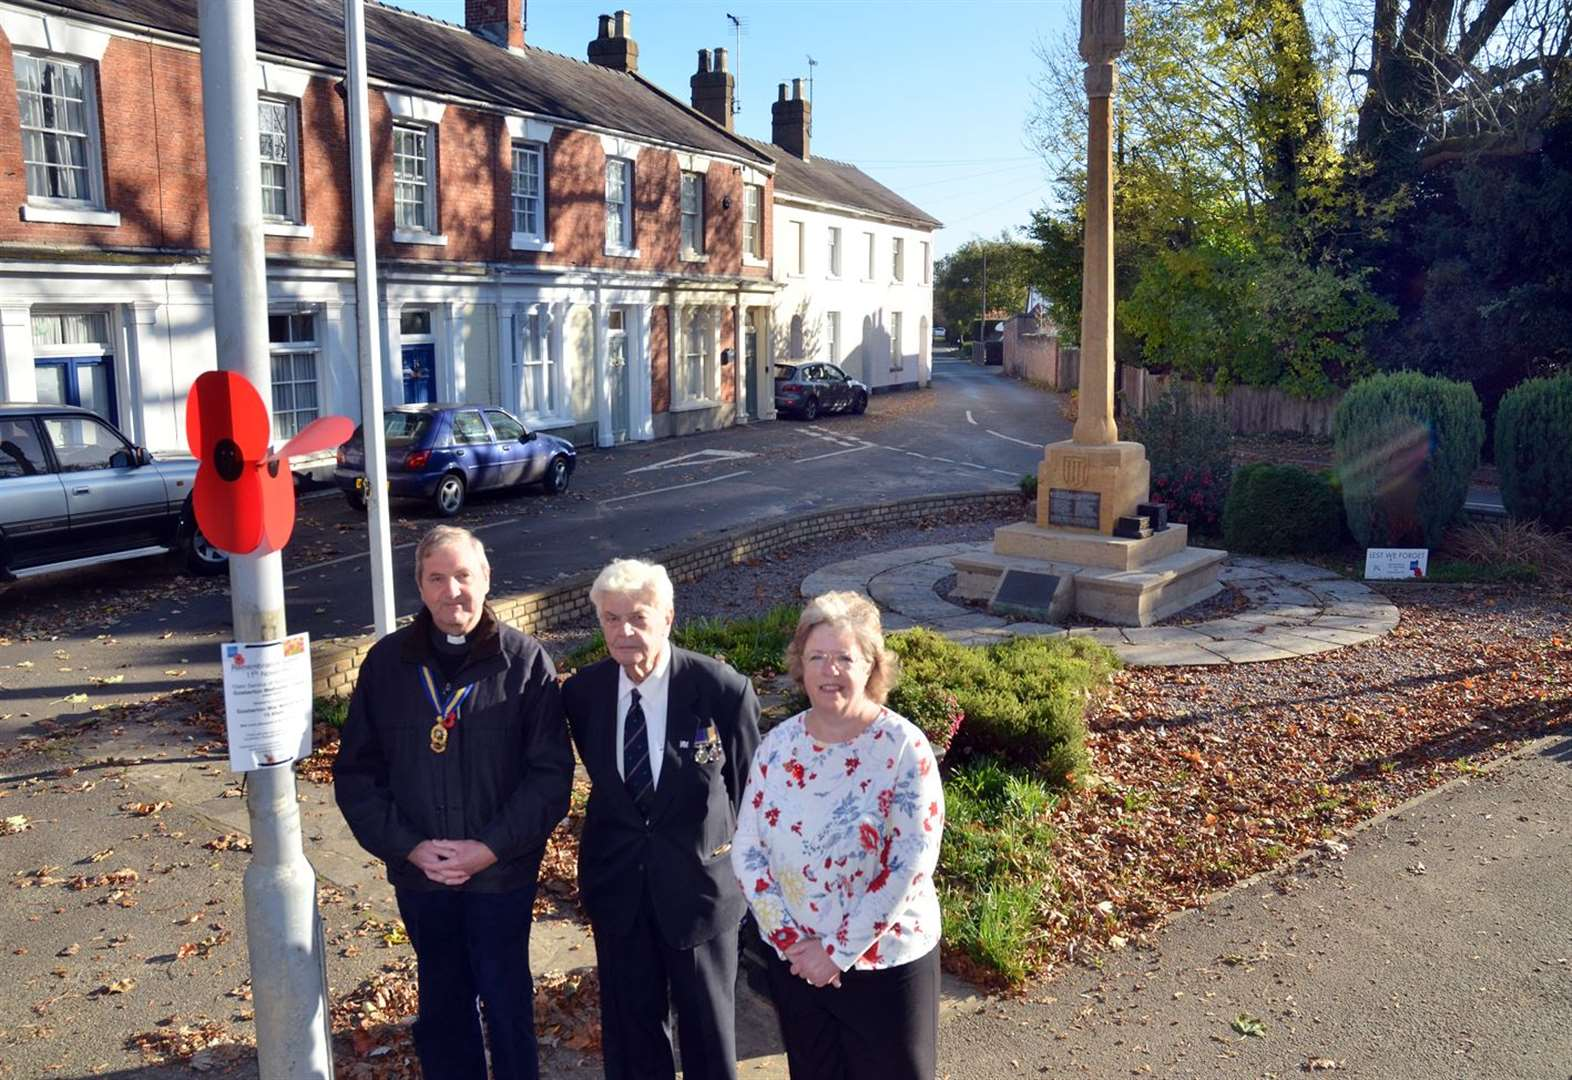 Plan to clean up village war memorial after inspection